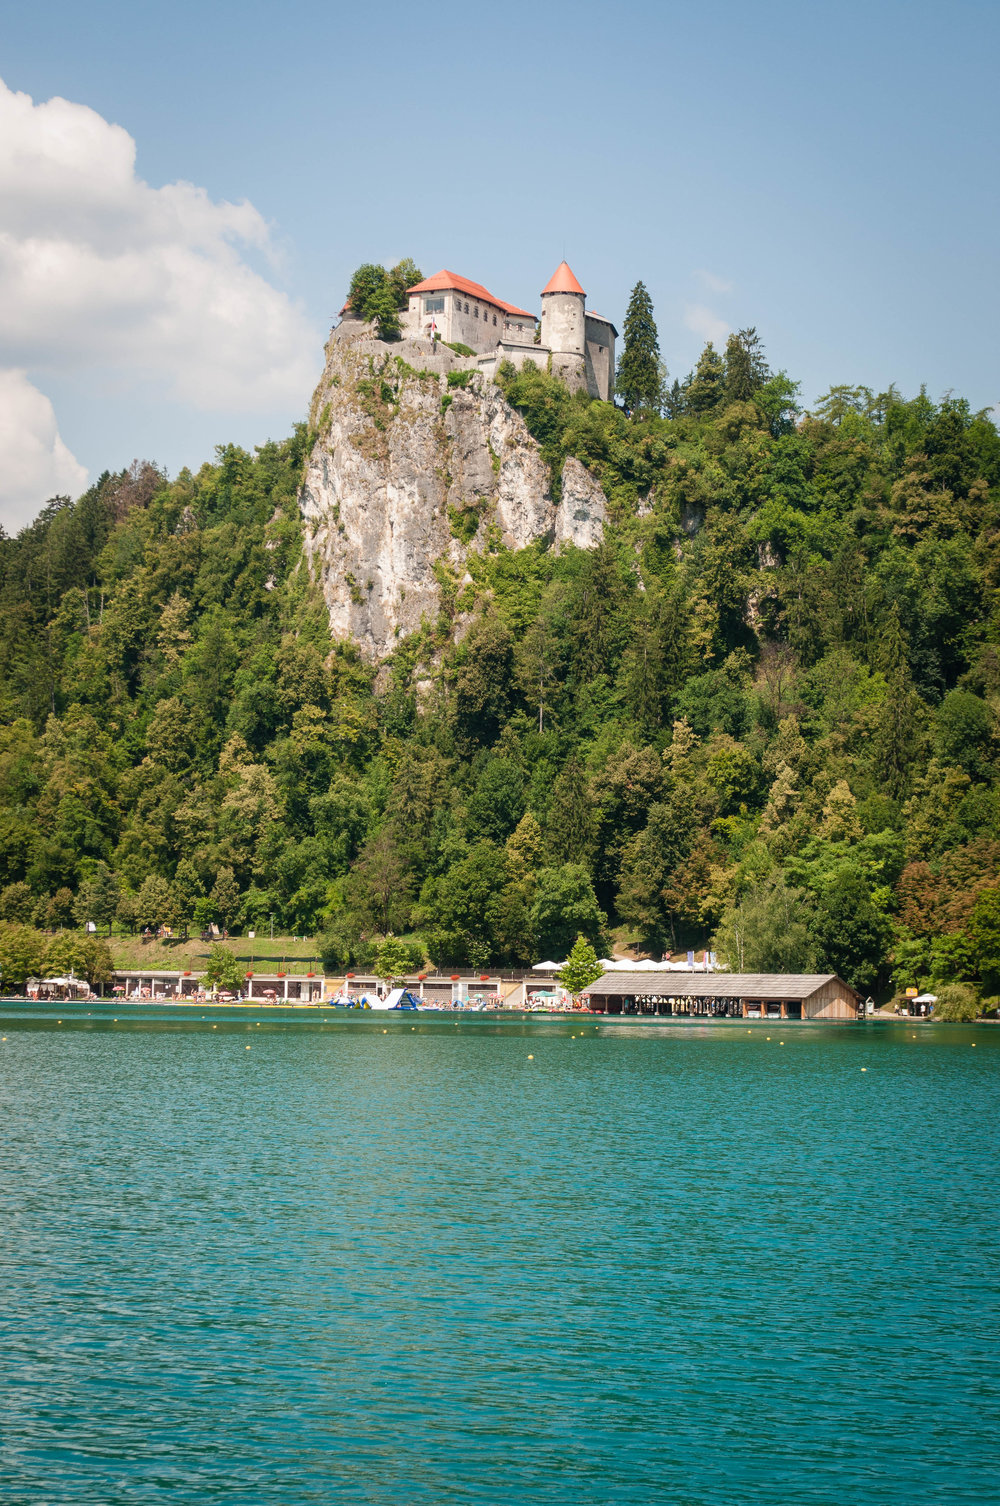 Lake Bled, part of the itinerary Road trip in Slovenia